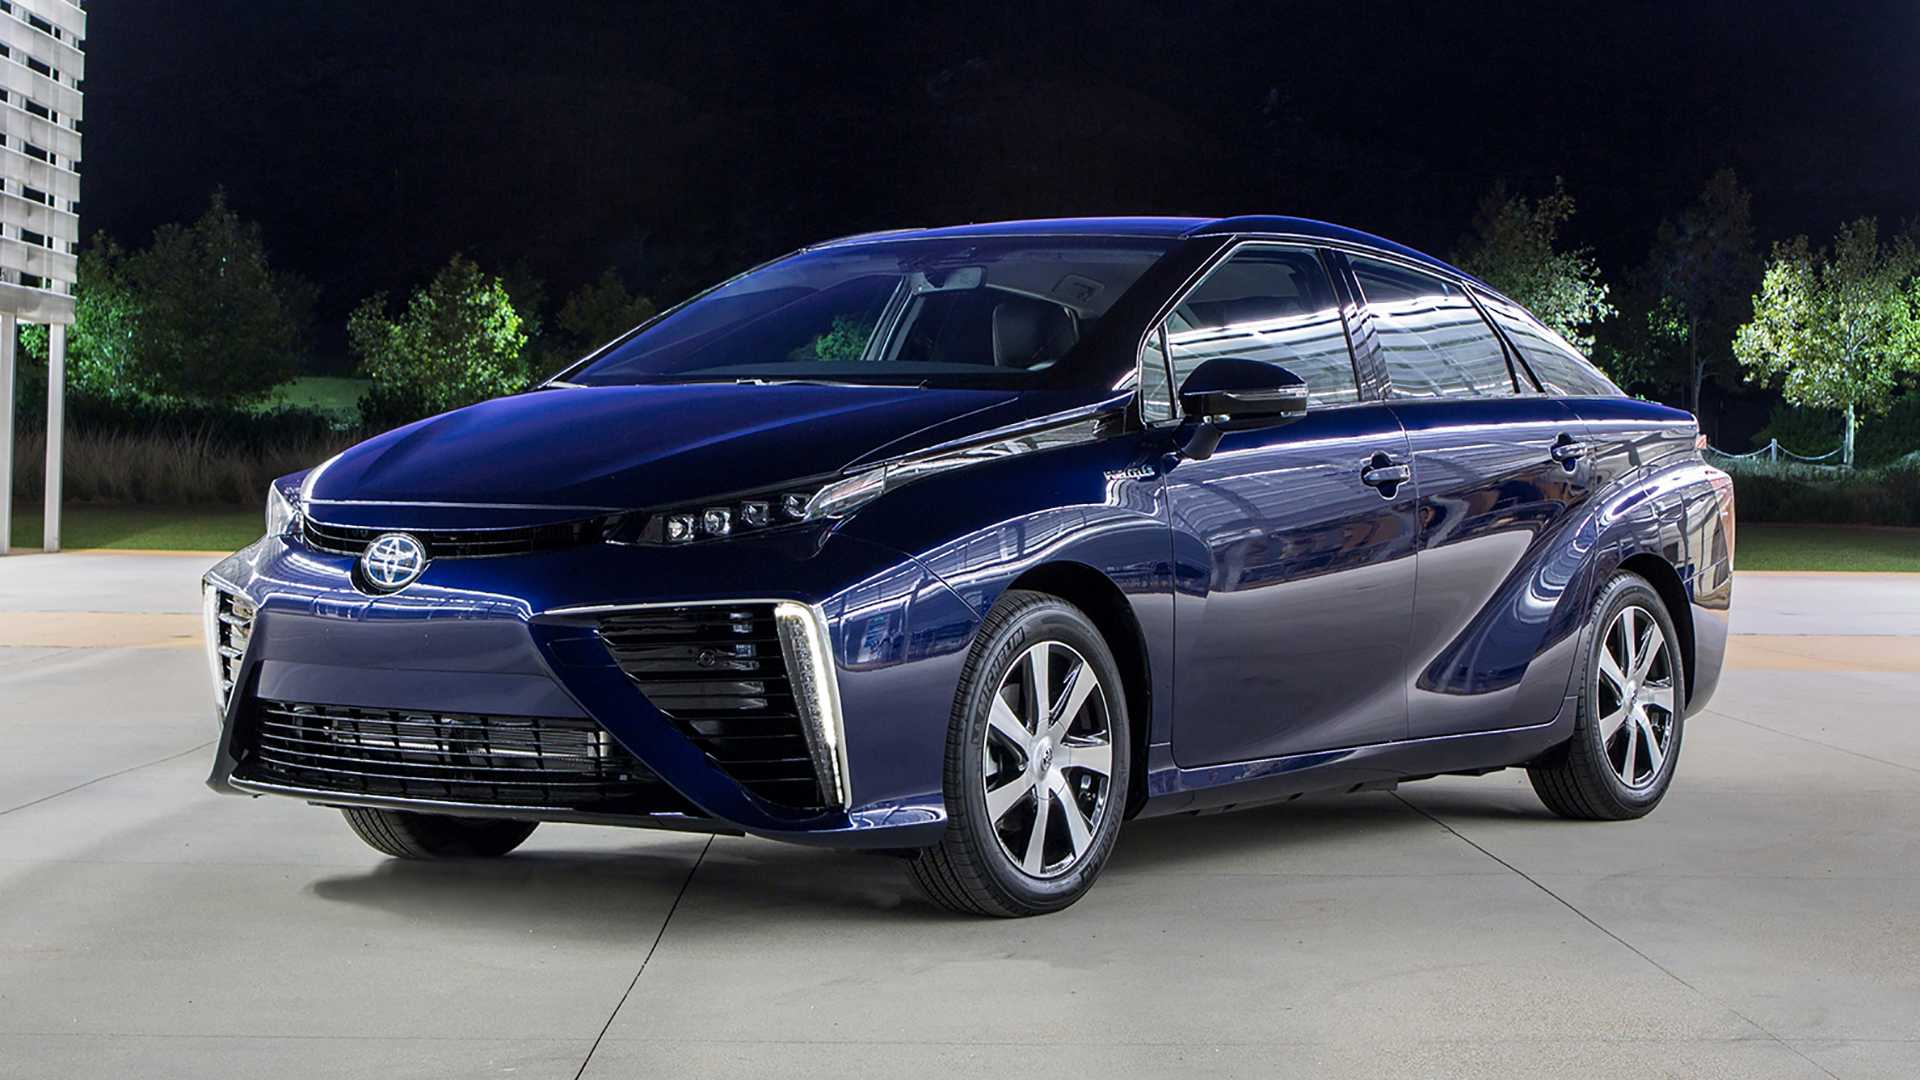 Second Generation Toyota Mirai Confirmed For 2020 Reveal